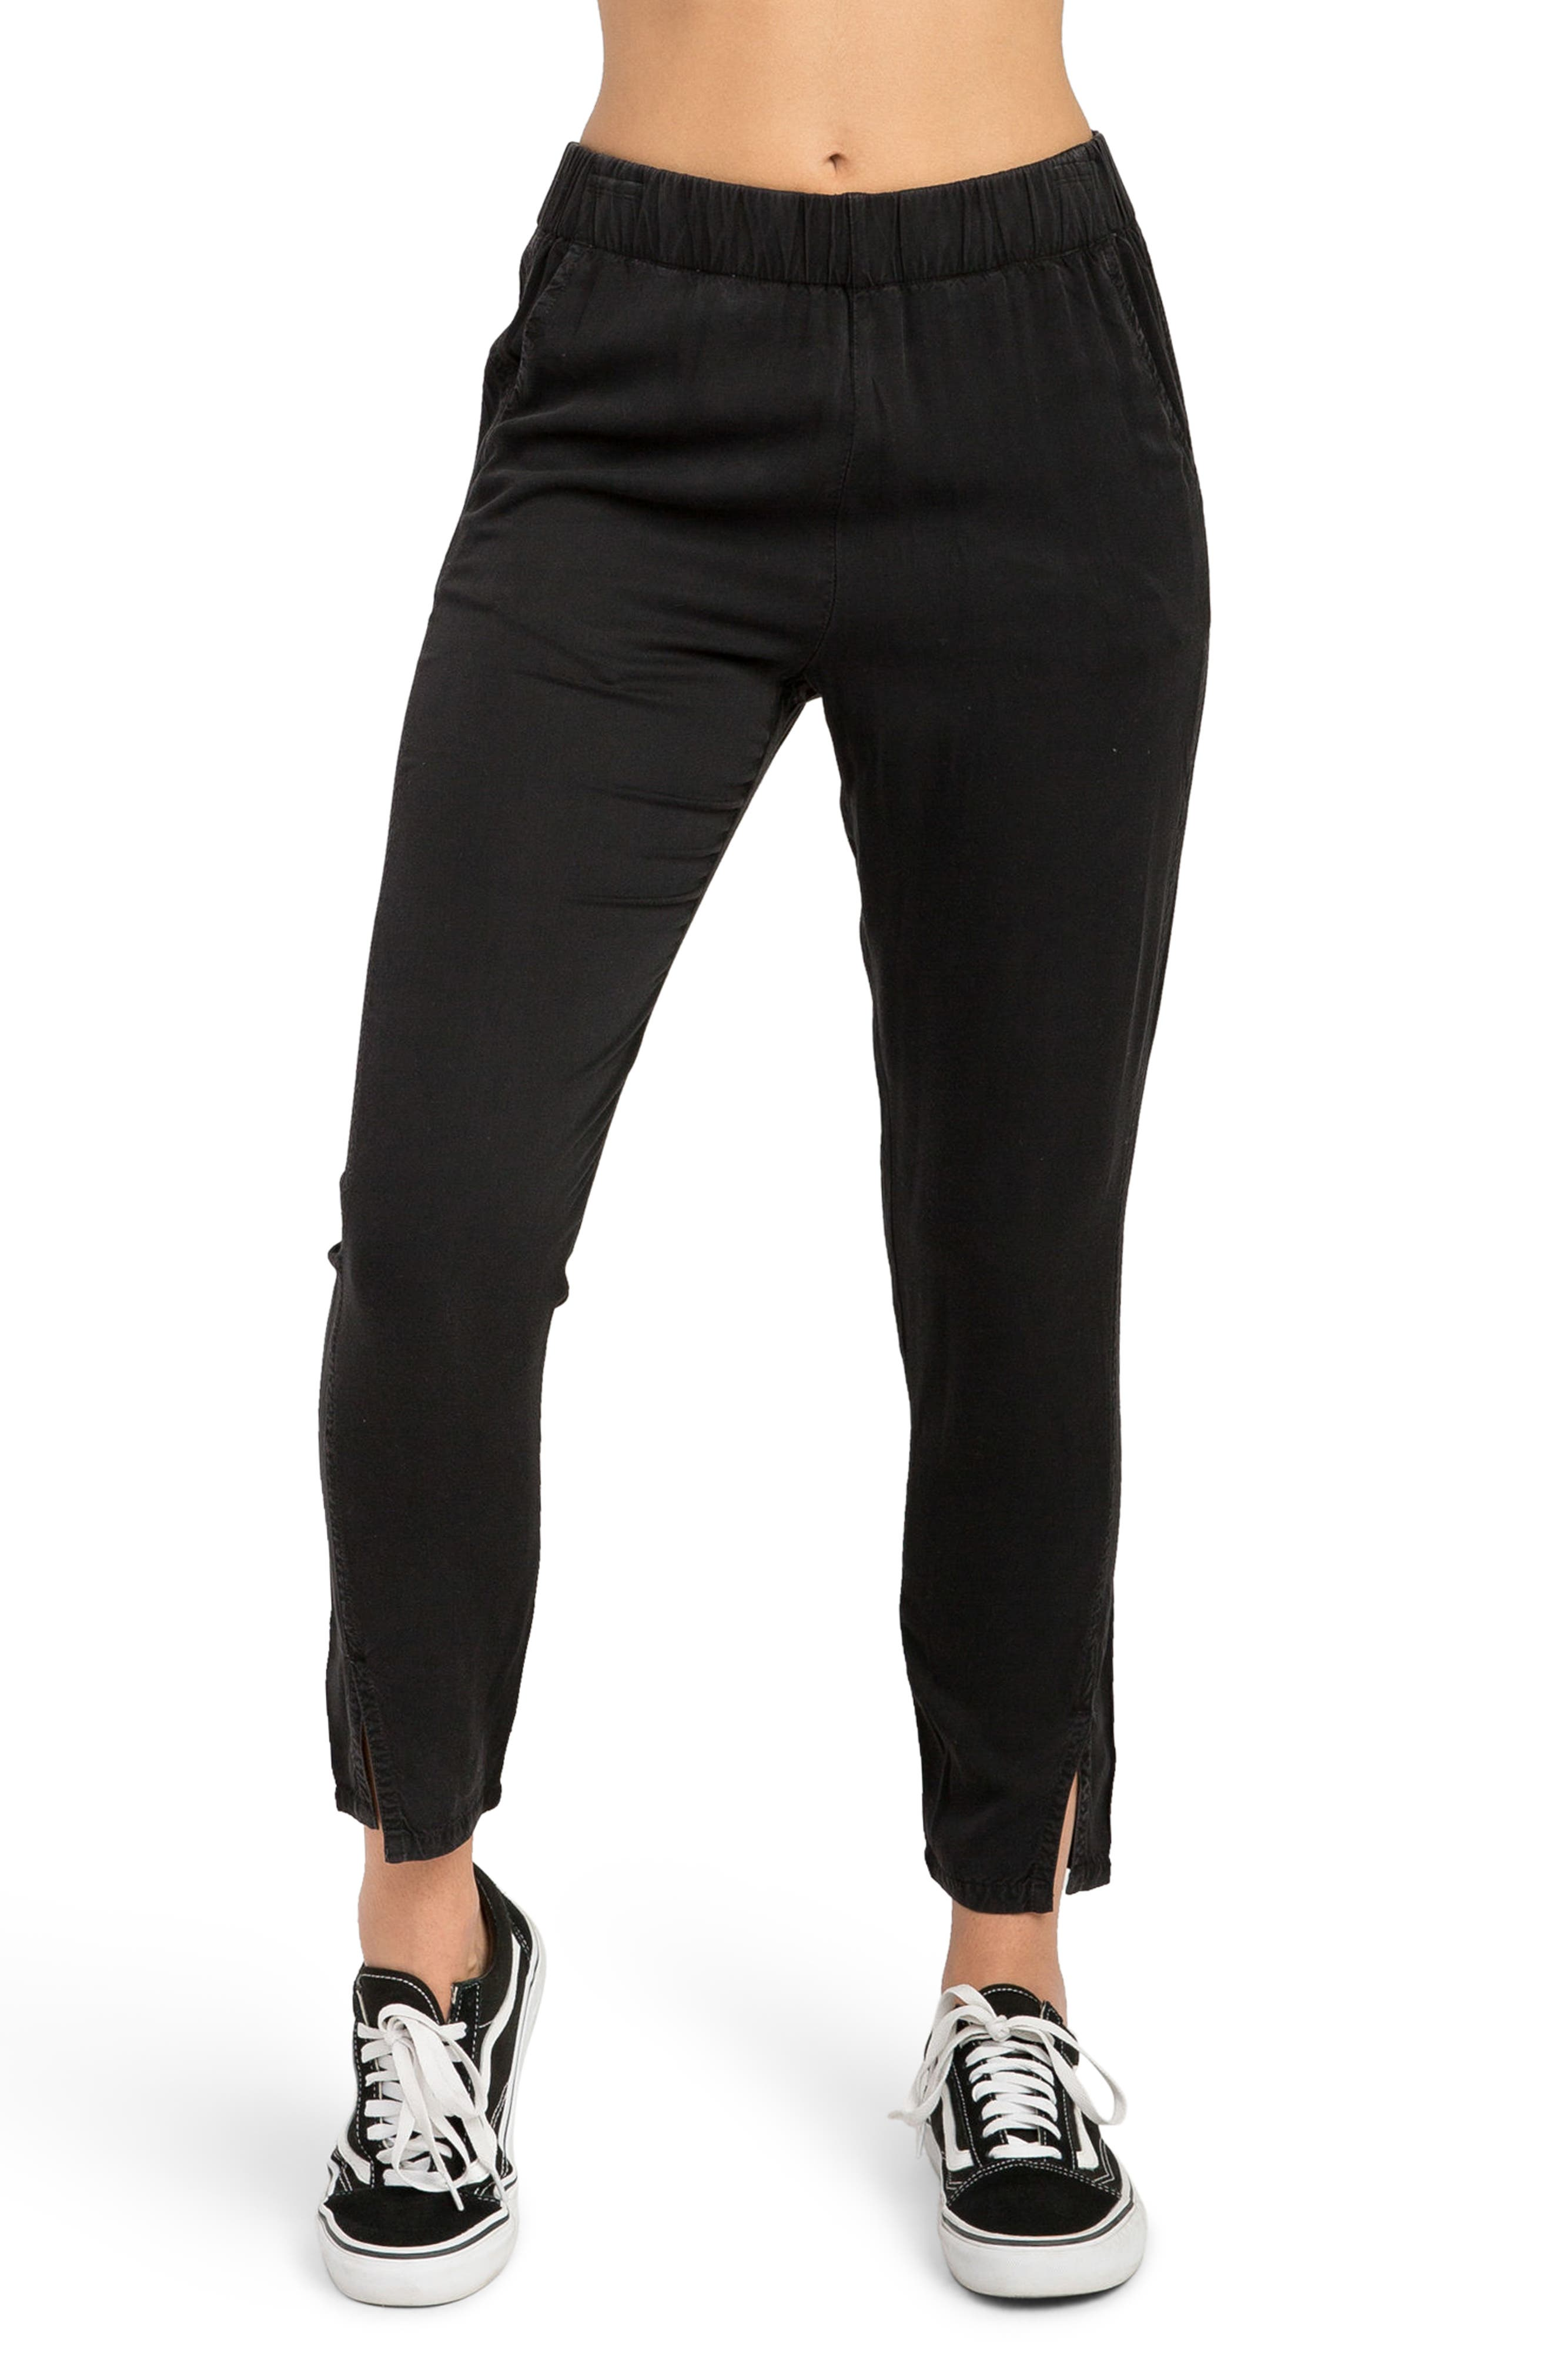 Chill Vibes Ankle Pants,                         Main,                         color, Black